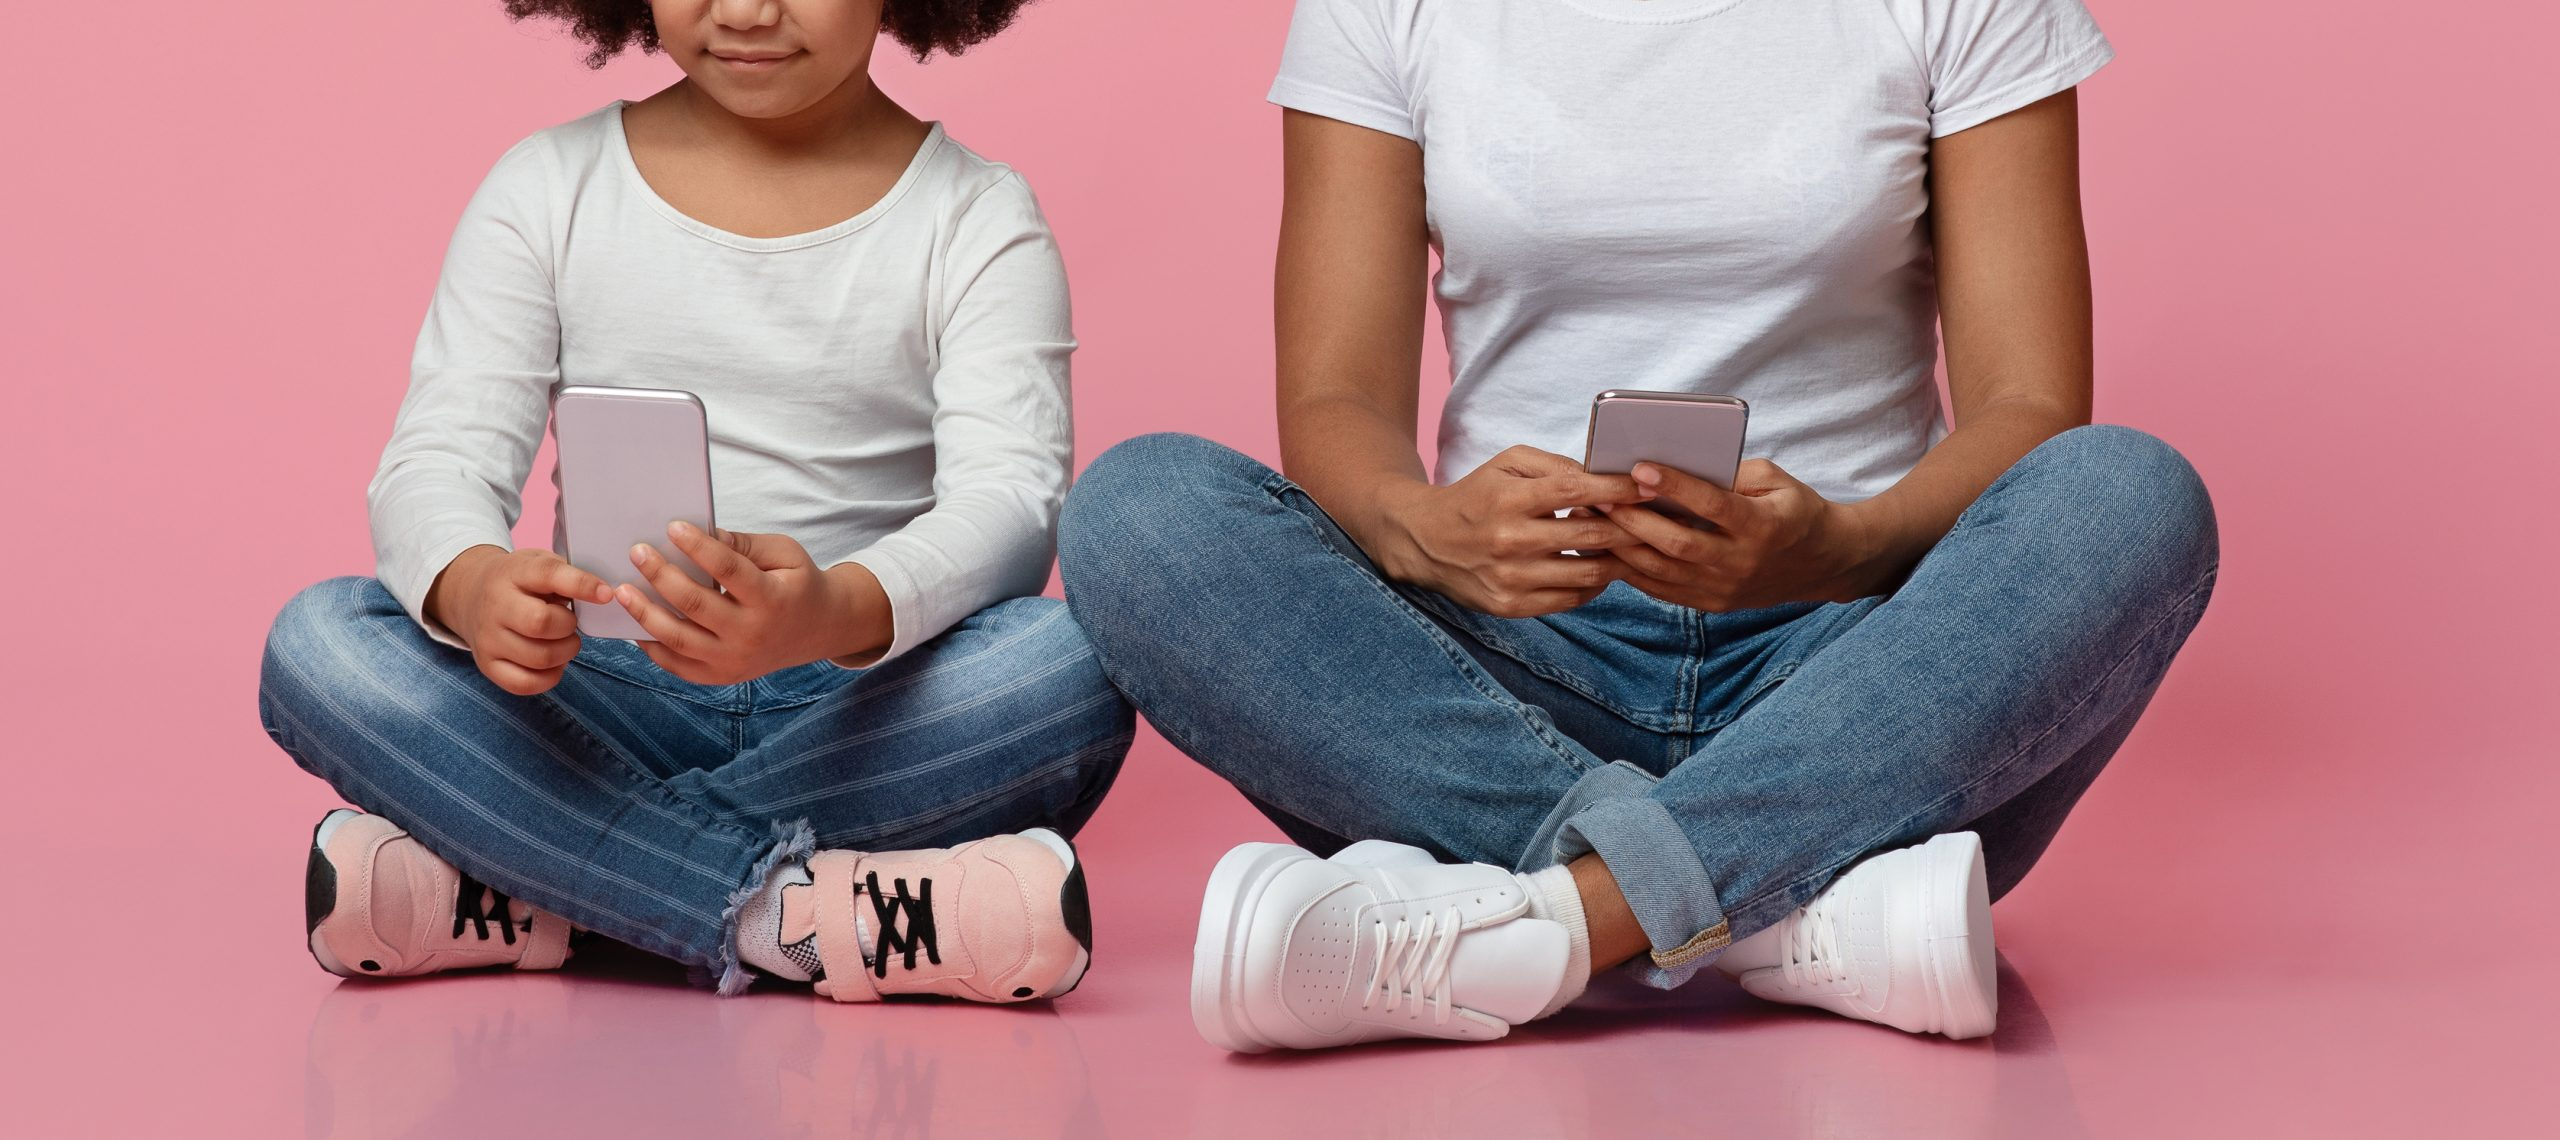 Obsession or Addiction? 13 Ways to Help Children Avoid Technology Overuse During Covid-19